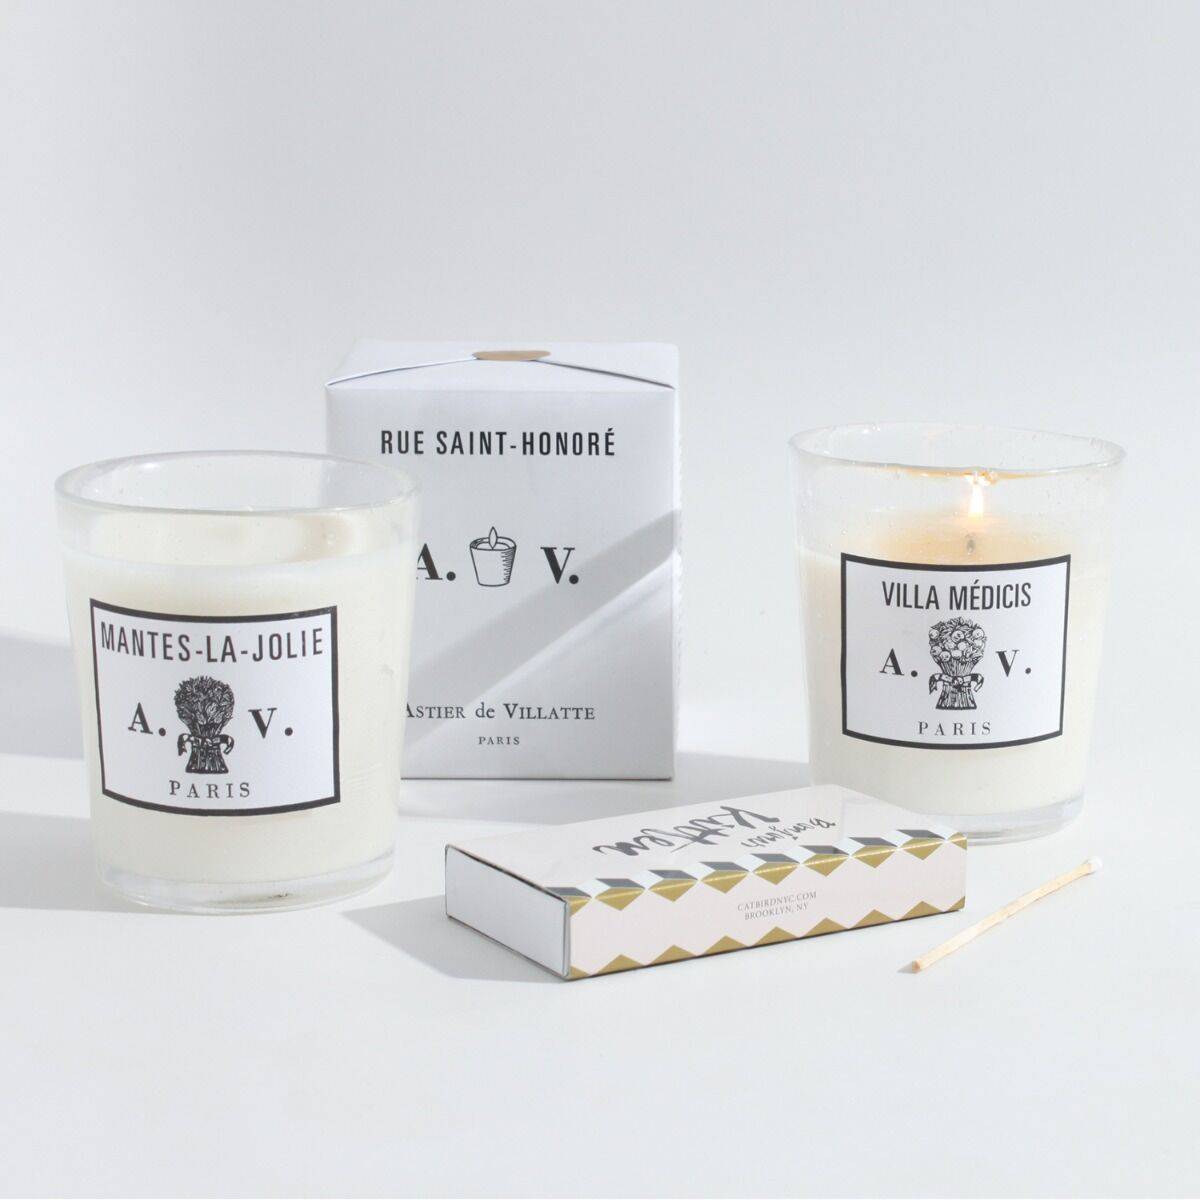 Rue Saint Honore Candle image